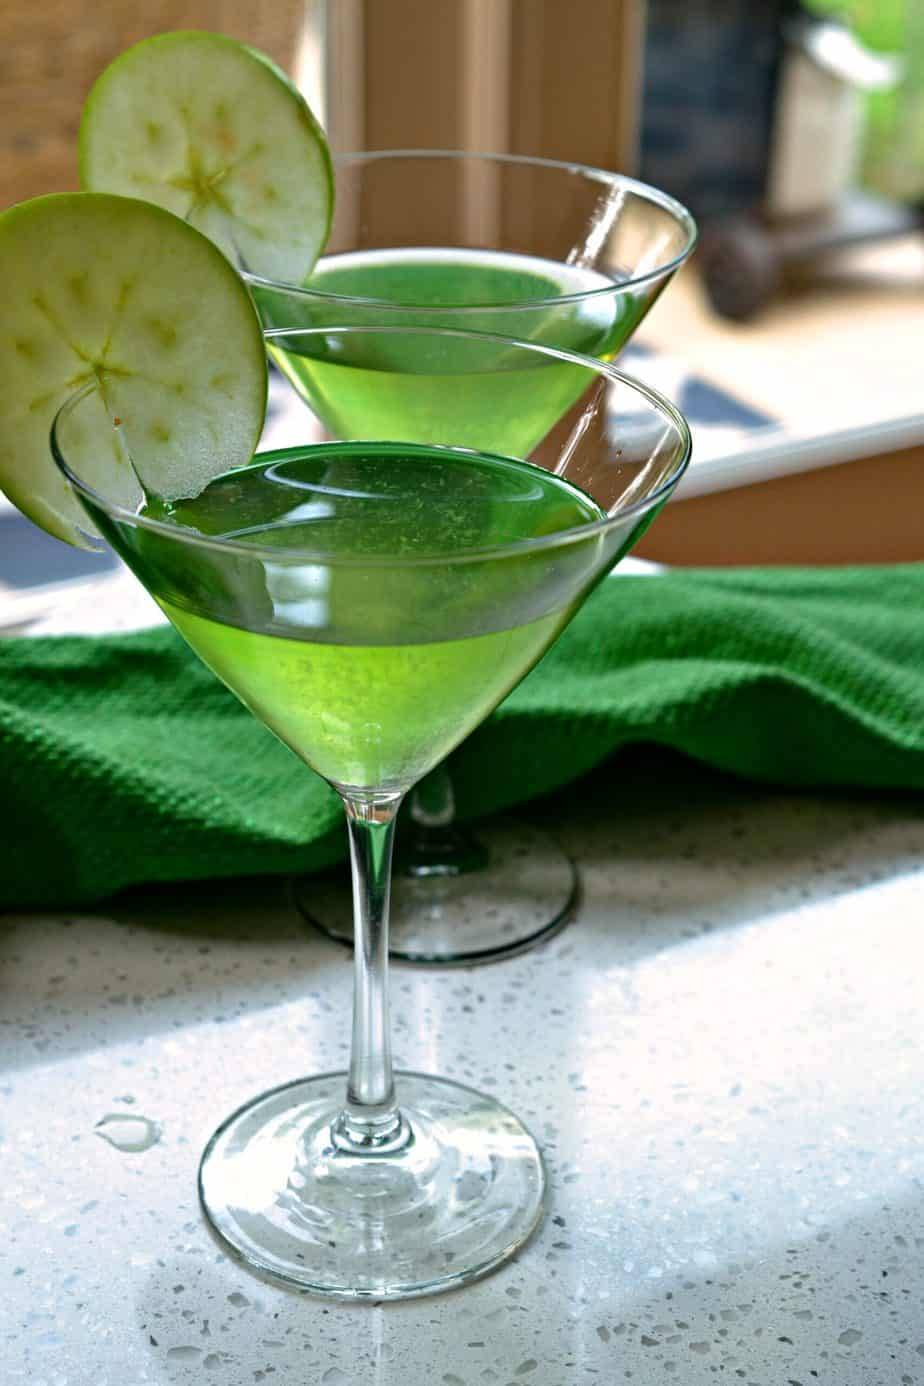 This four ingredient Appletini (Apple Martini) is one of our favorite party cocktails with its superb sour apple flavor.